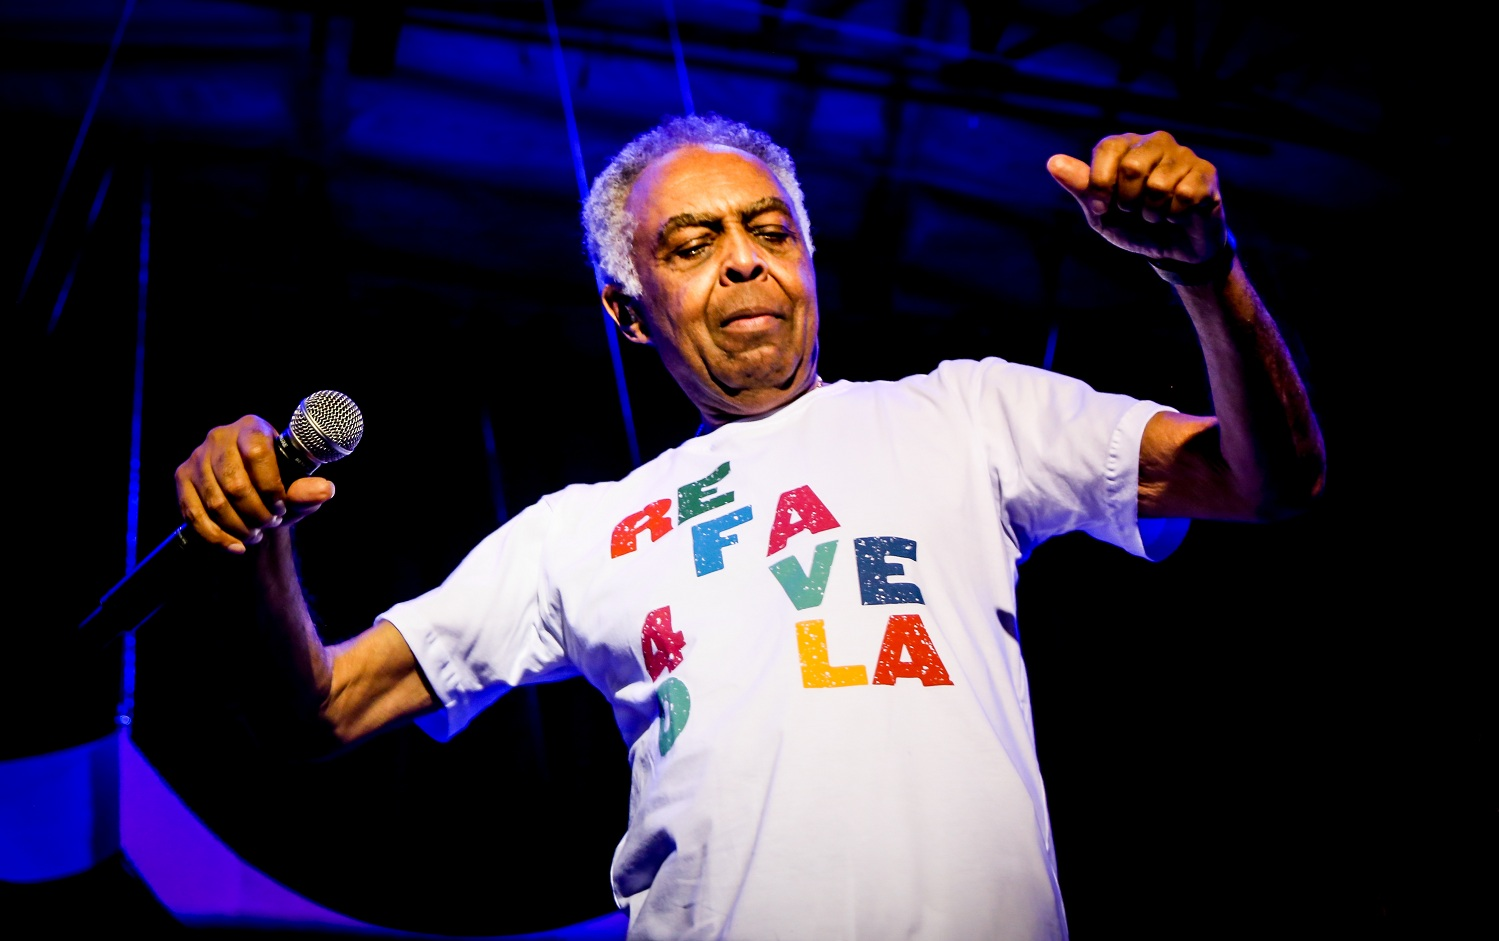 ''Refavela 40'': HBO emitirá documental sobre Gilberto Gil